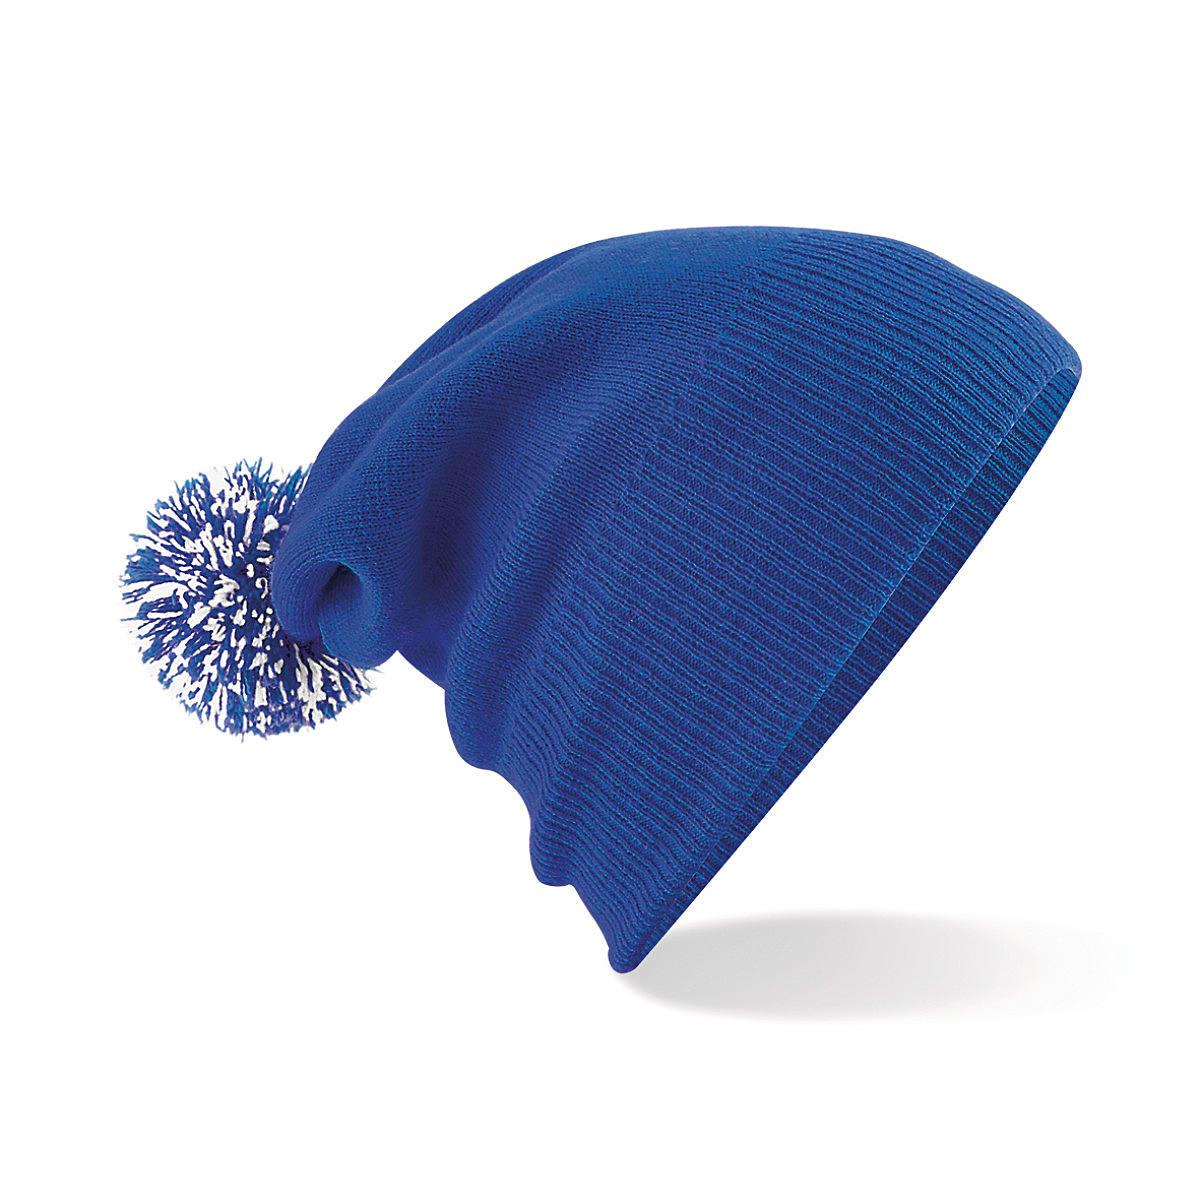 Beechfield Snowstar Beanie Hat in Bright Royal / White (Product Code: B450)